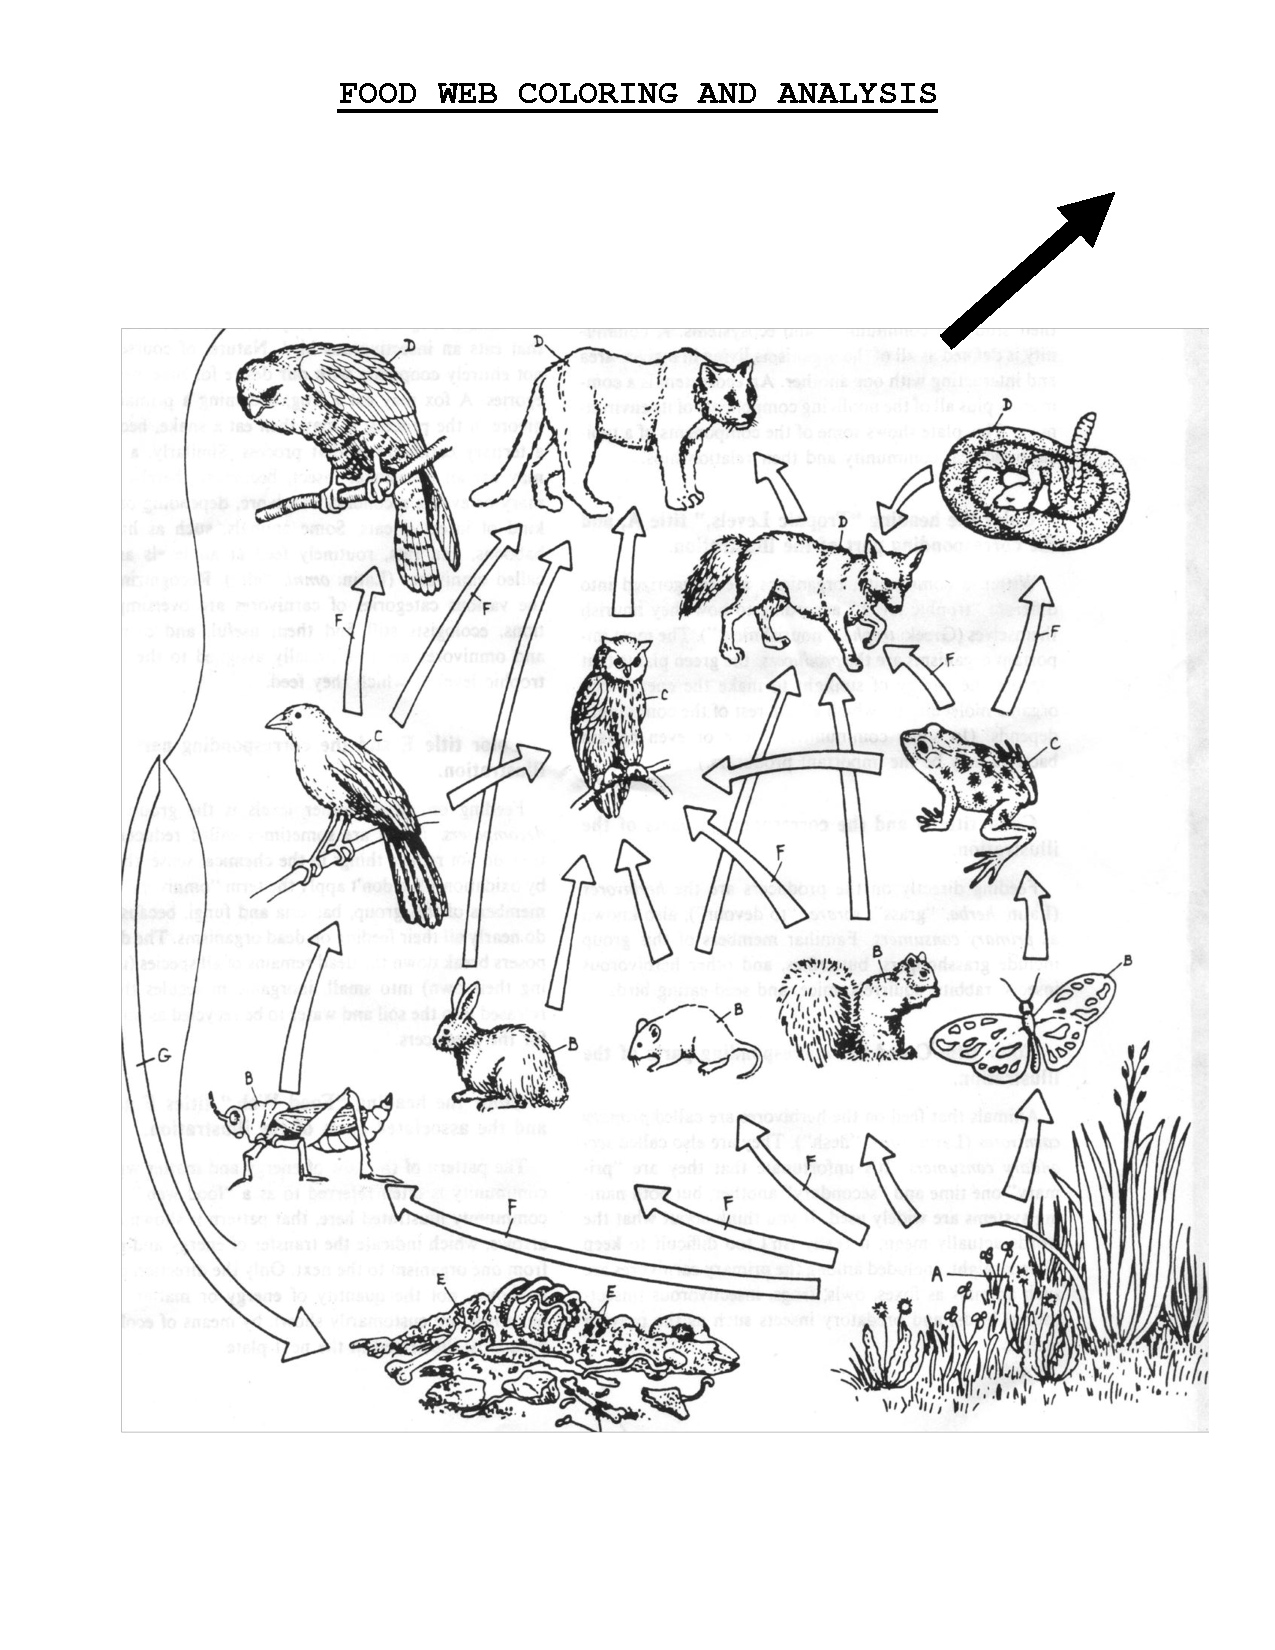 Food Web Coloring Sheet